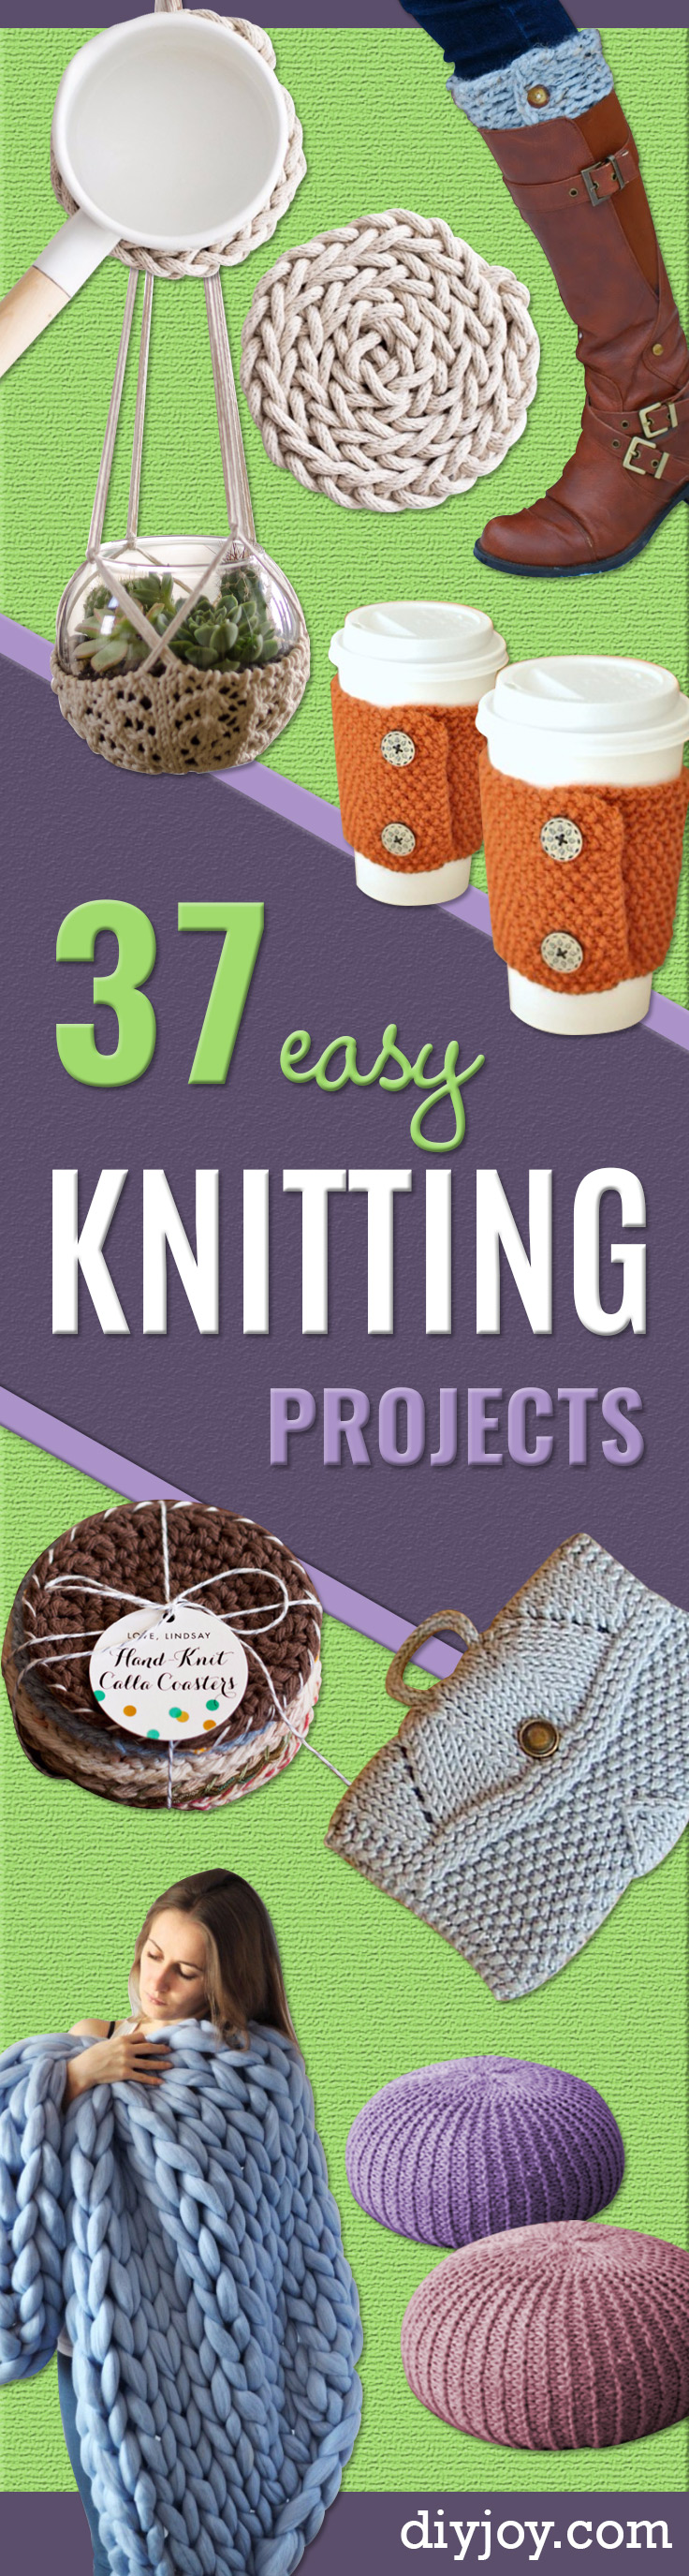 38 Easy Knitting Ideas - Knitting Ideas For Beginners, Cute Knit Projects, DIY Knitting Ideas And Patterns, Easy Knitting Crafts, Gifts You Can Knit, Knitted Decors #knitting